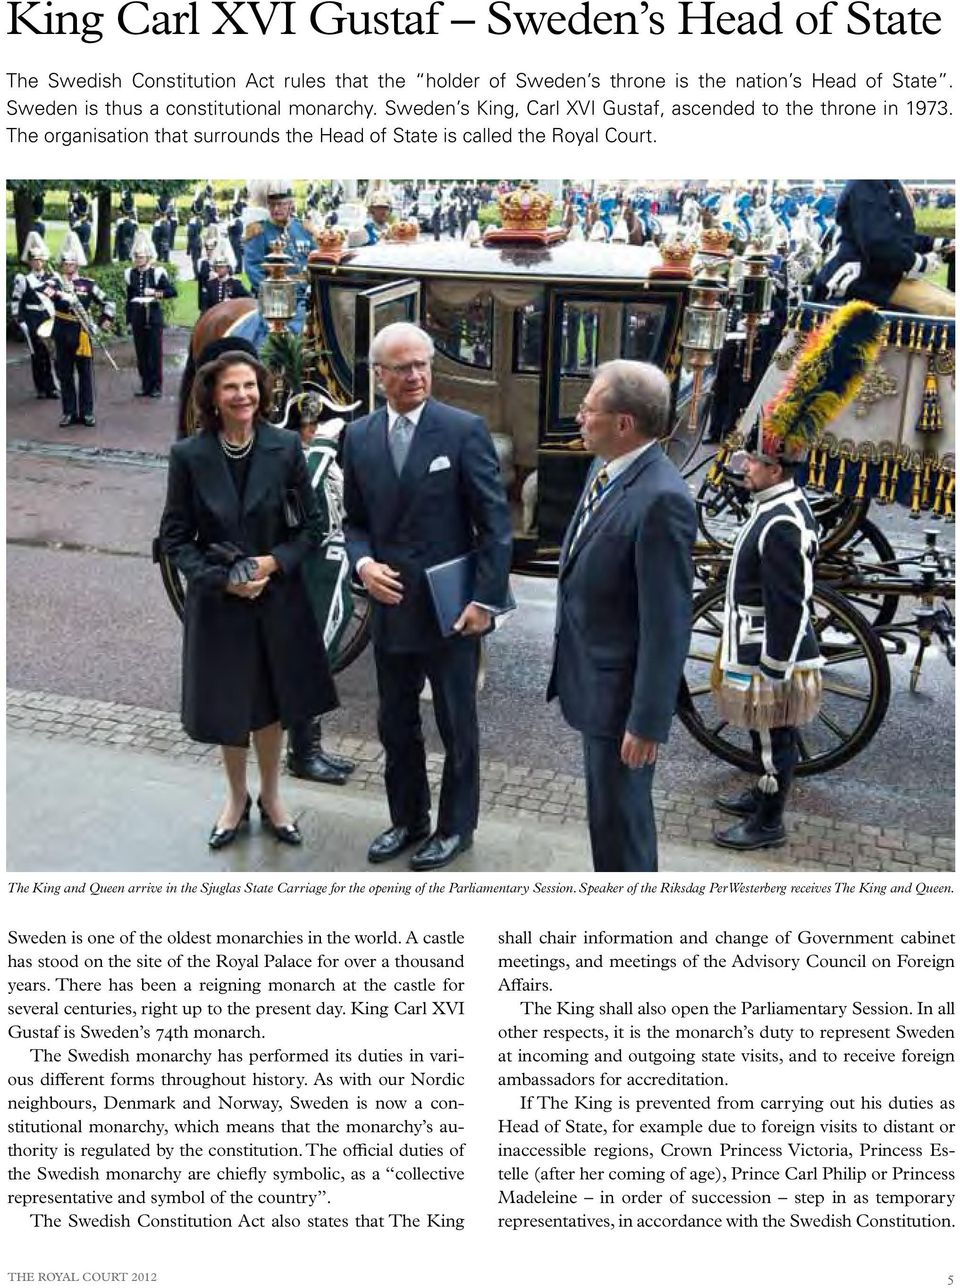 The King and Queen arrive in the Sjuglas State Carriage for the opening of the Parliamentary Session. Speaker of the Riksdag Per Westerberg receives The King and Queen.